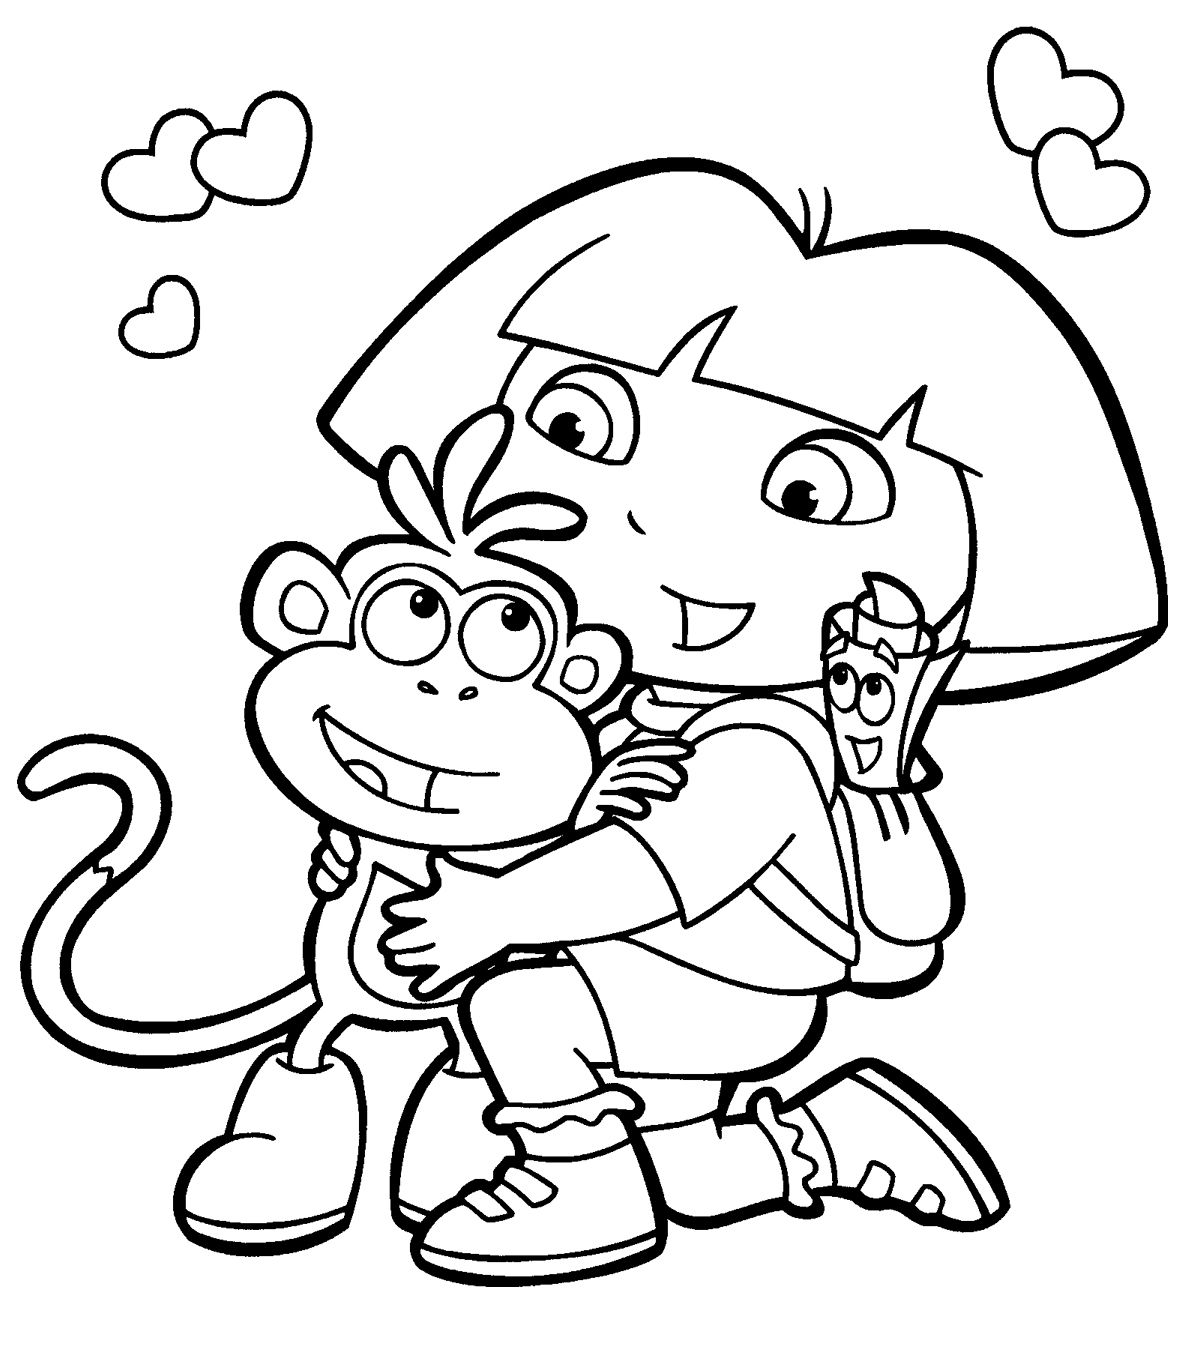 coloring book pages free nickjrs dora the explorer coloring book printables - Coloringbook Pages